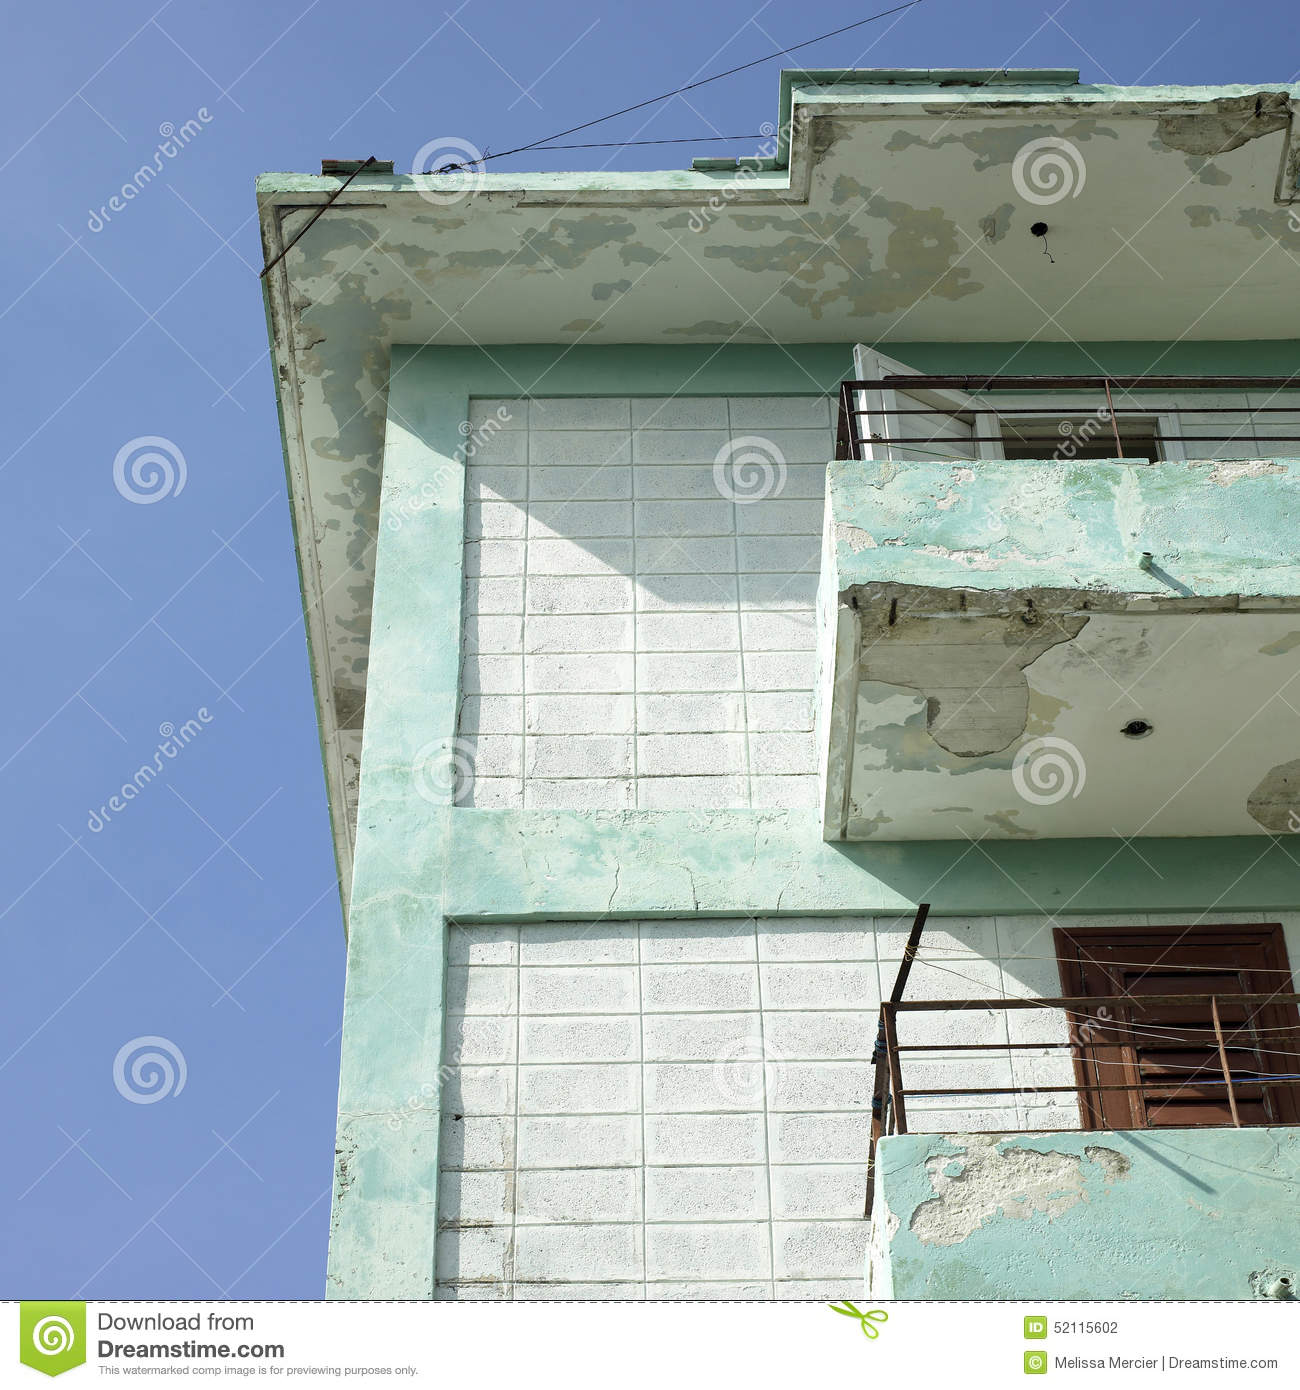 Balconies Of Crumbling Apartment Stock Photo - Image of